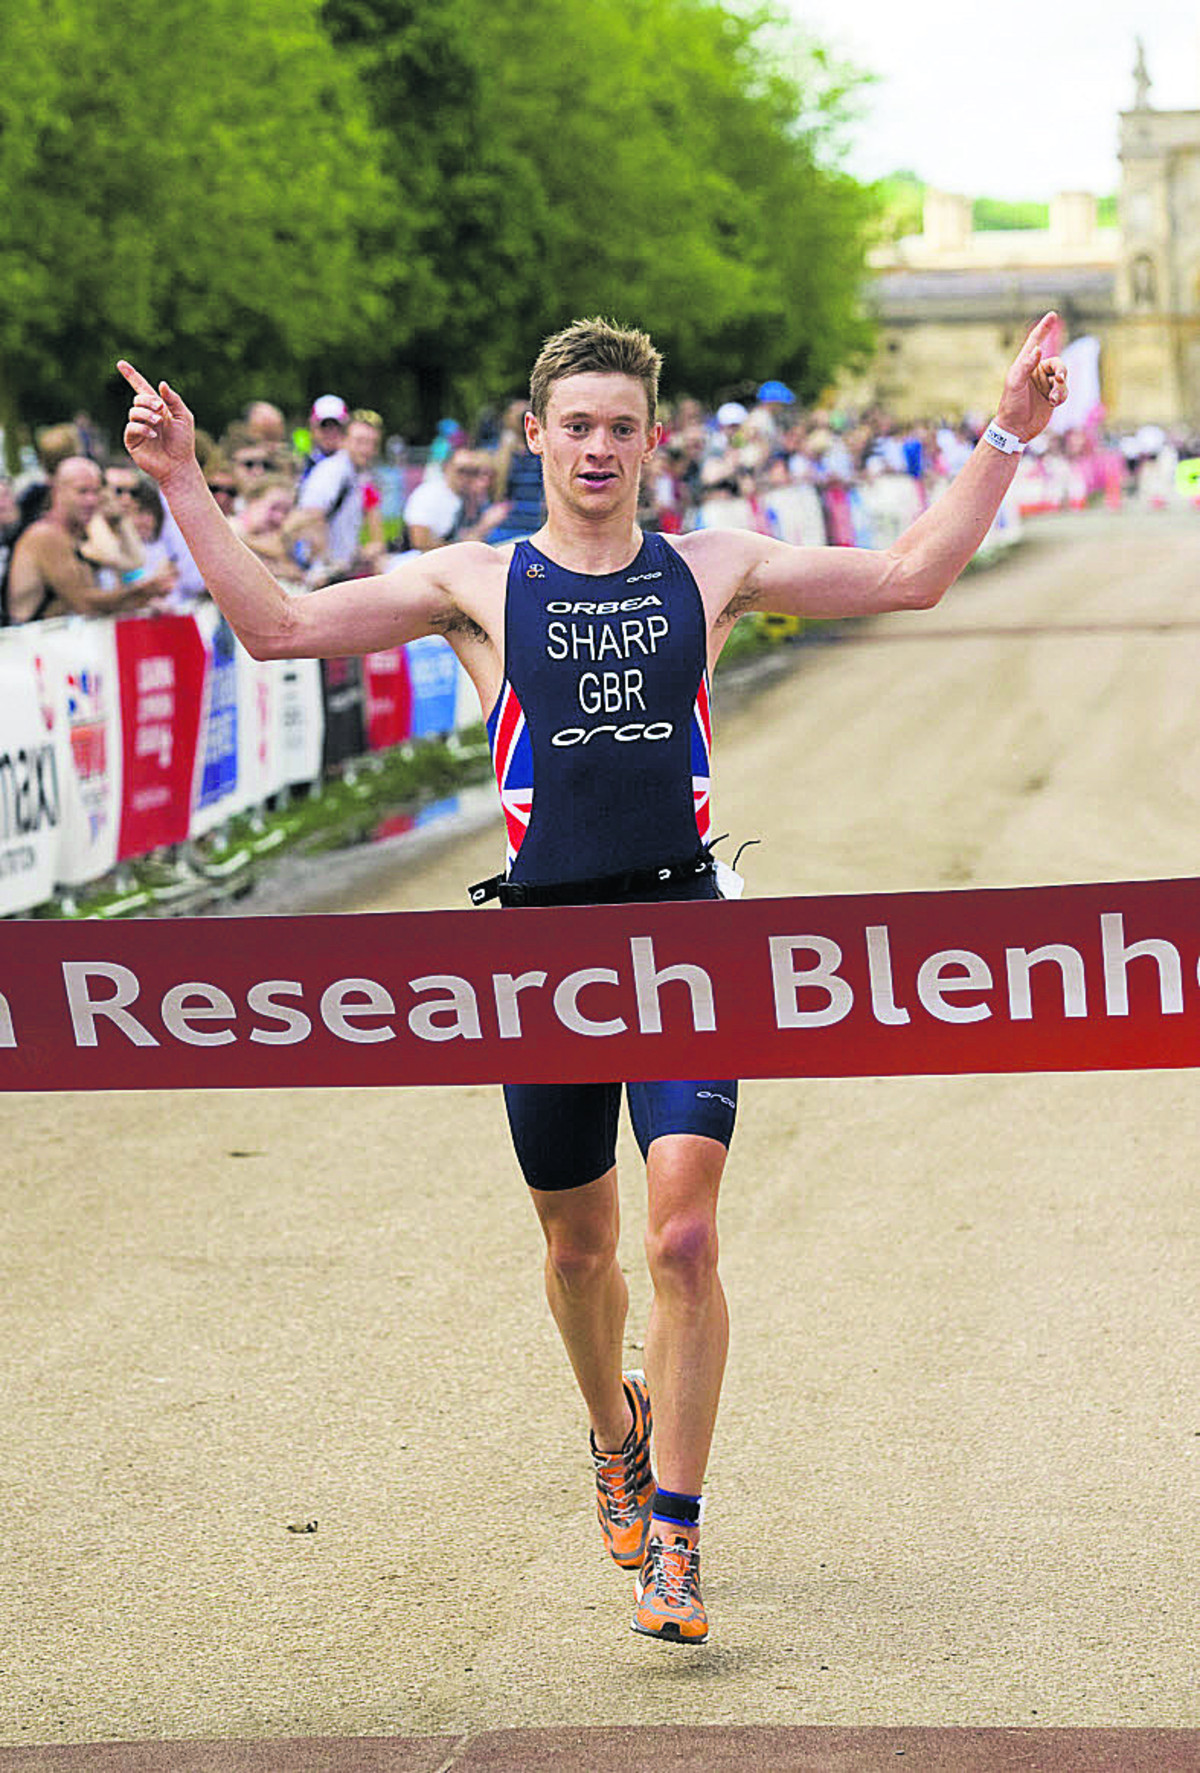 TRIATHLON: Sharp and Pallant win at Blenheim